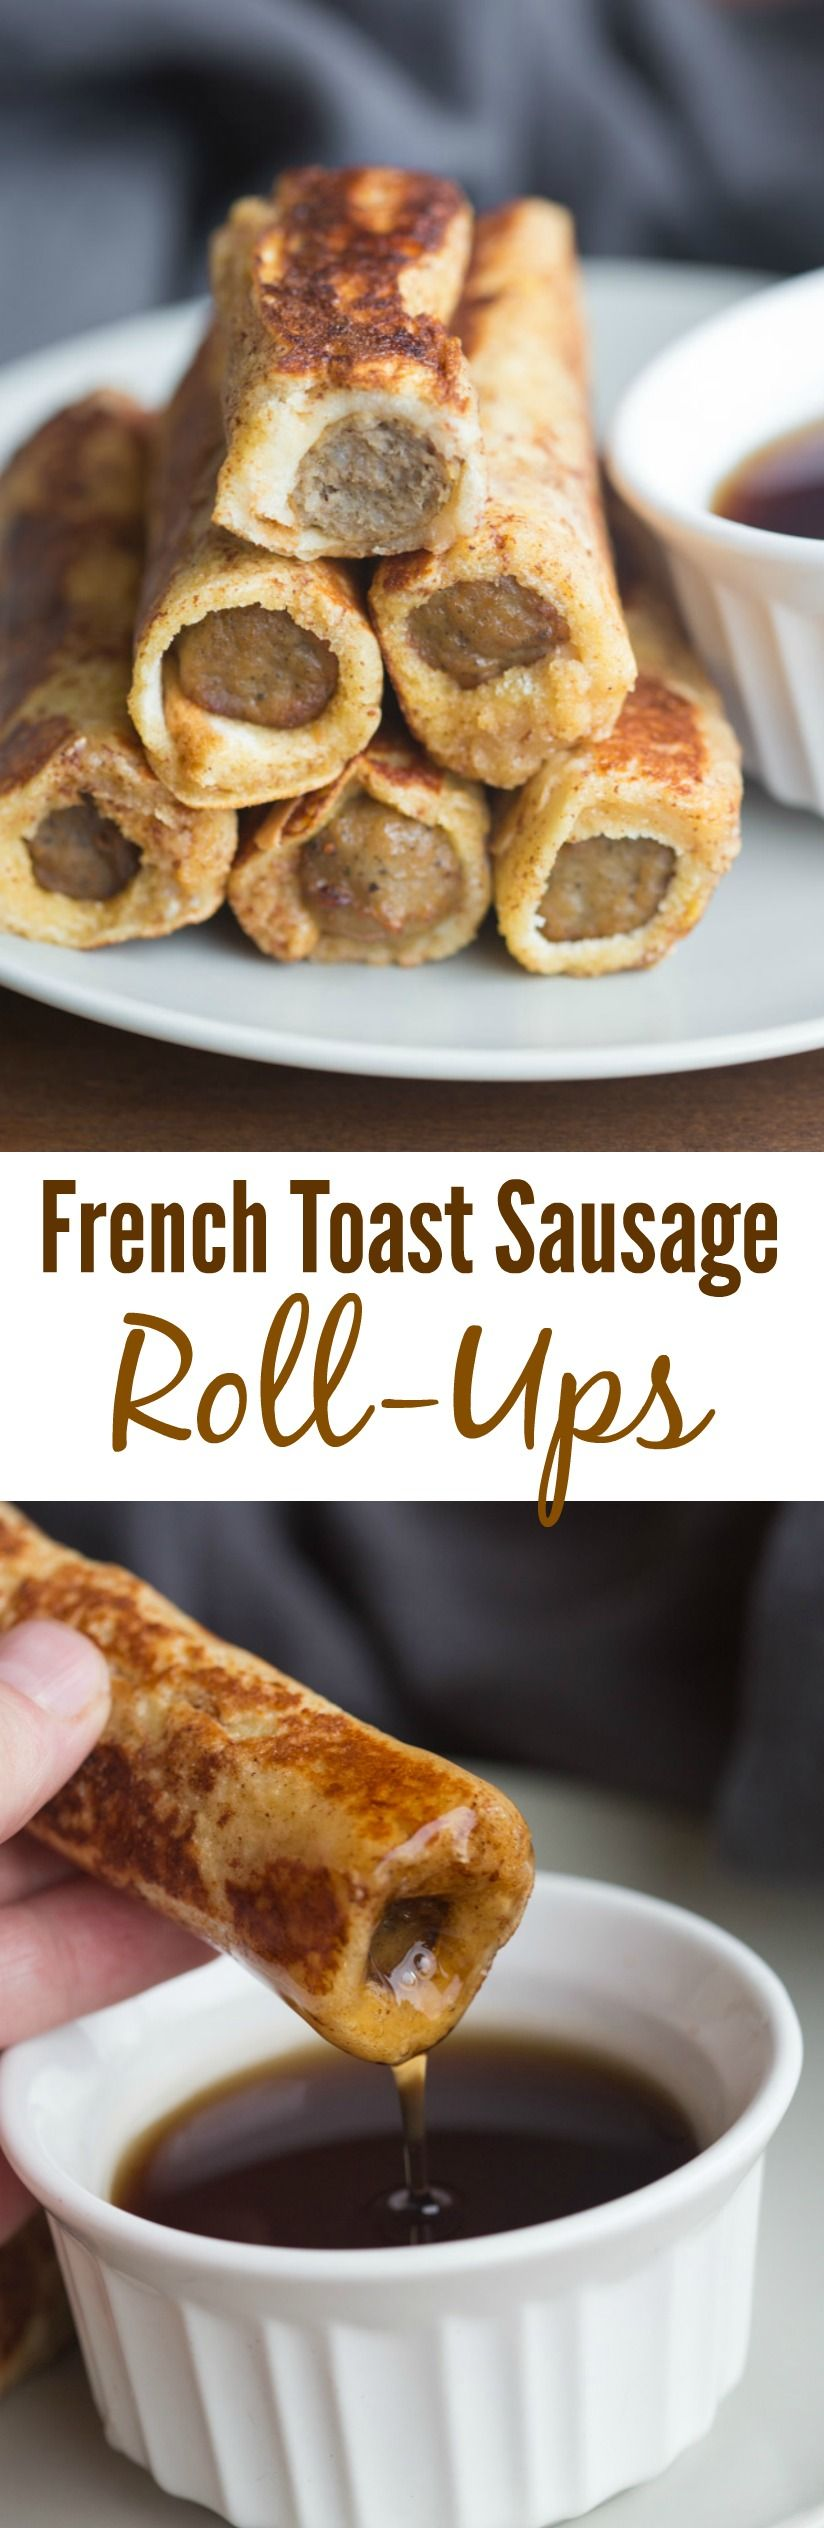 Easy To Make And Fun To Eat, These French Toast Sausage Rollups Are